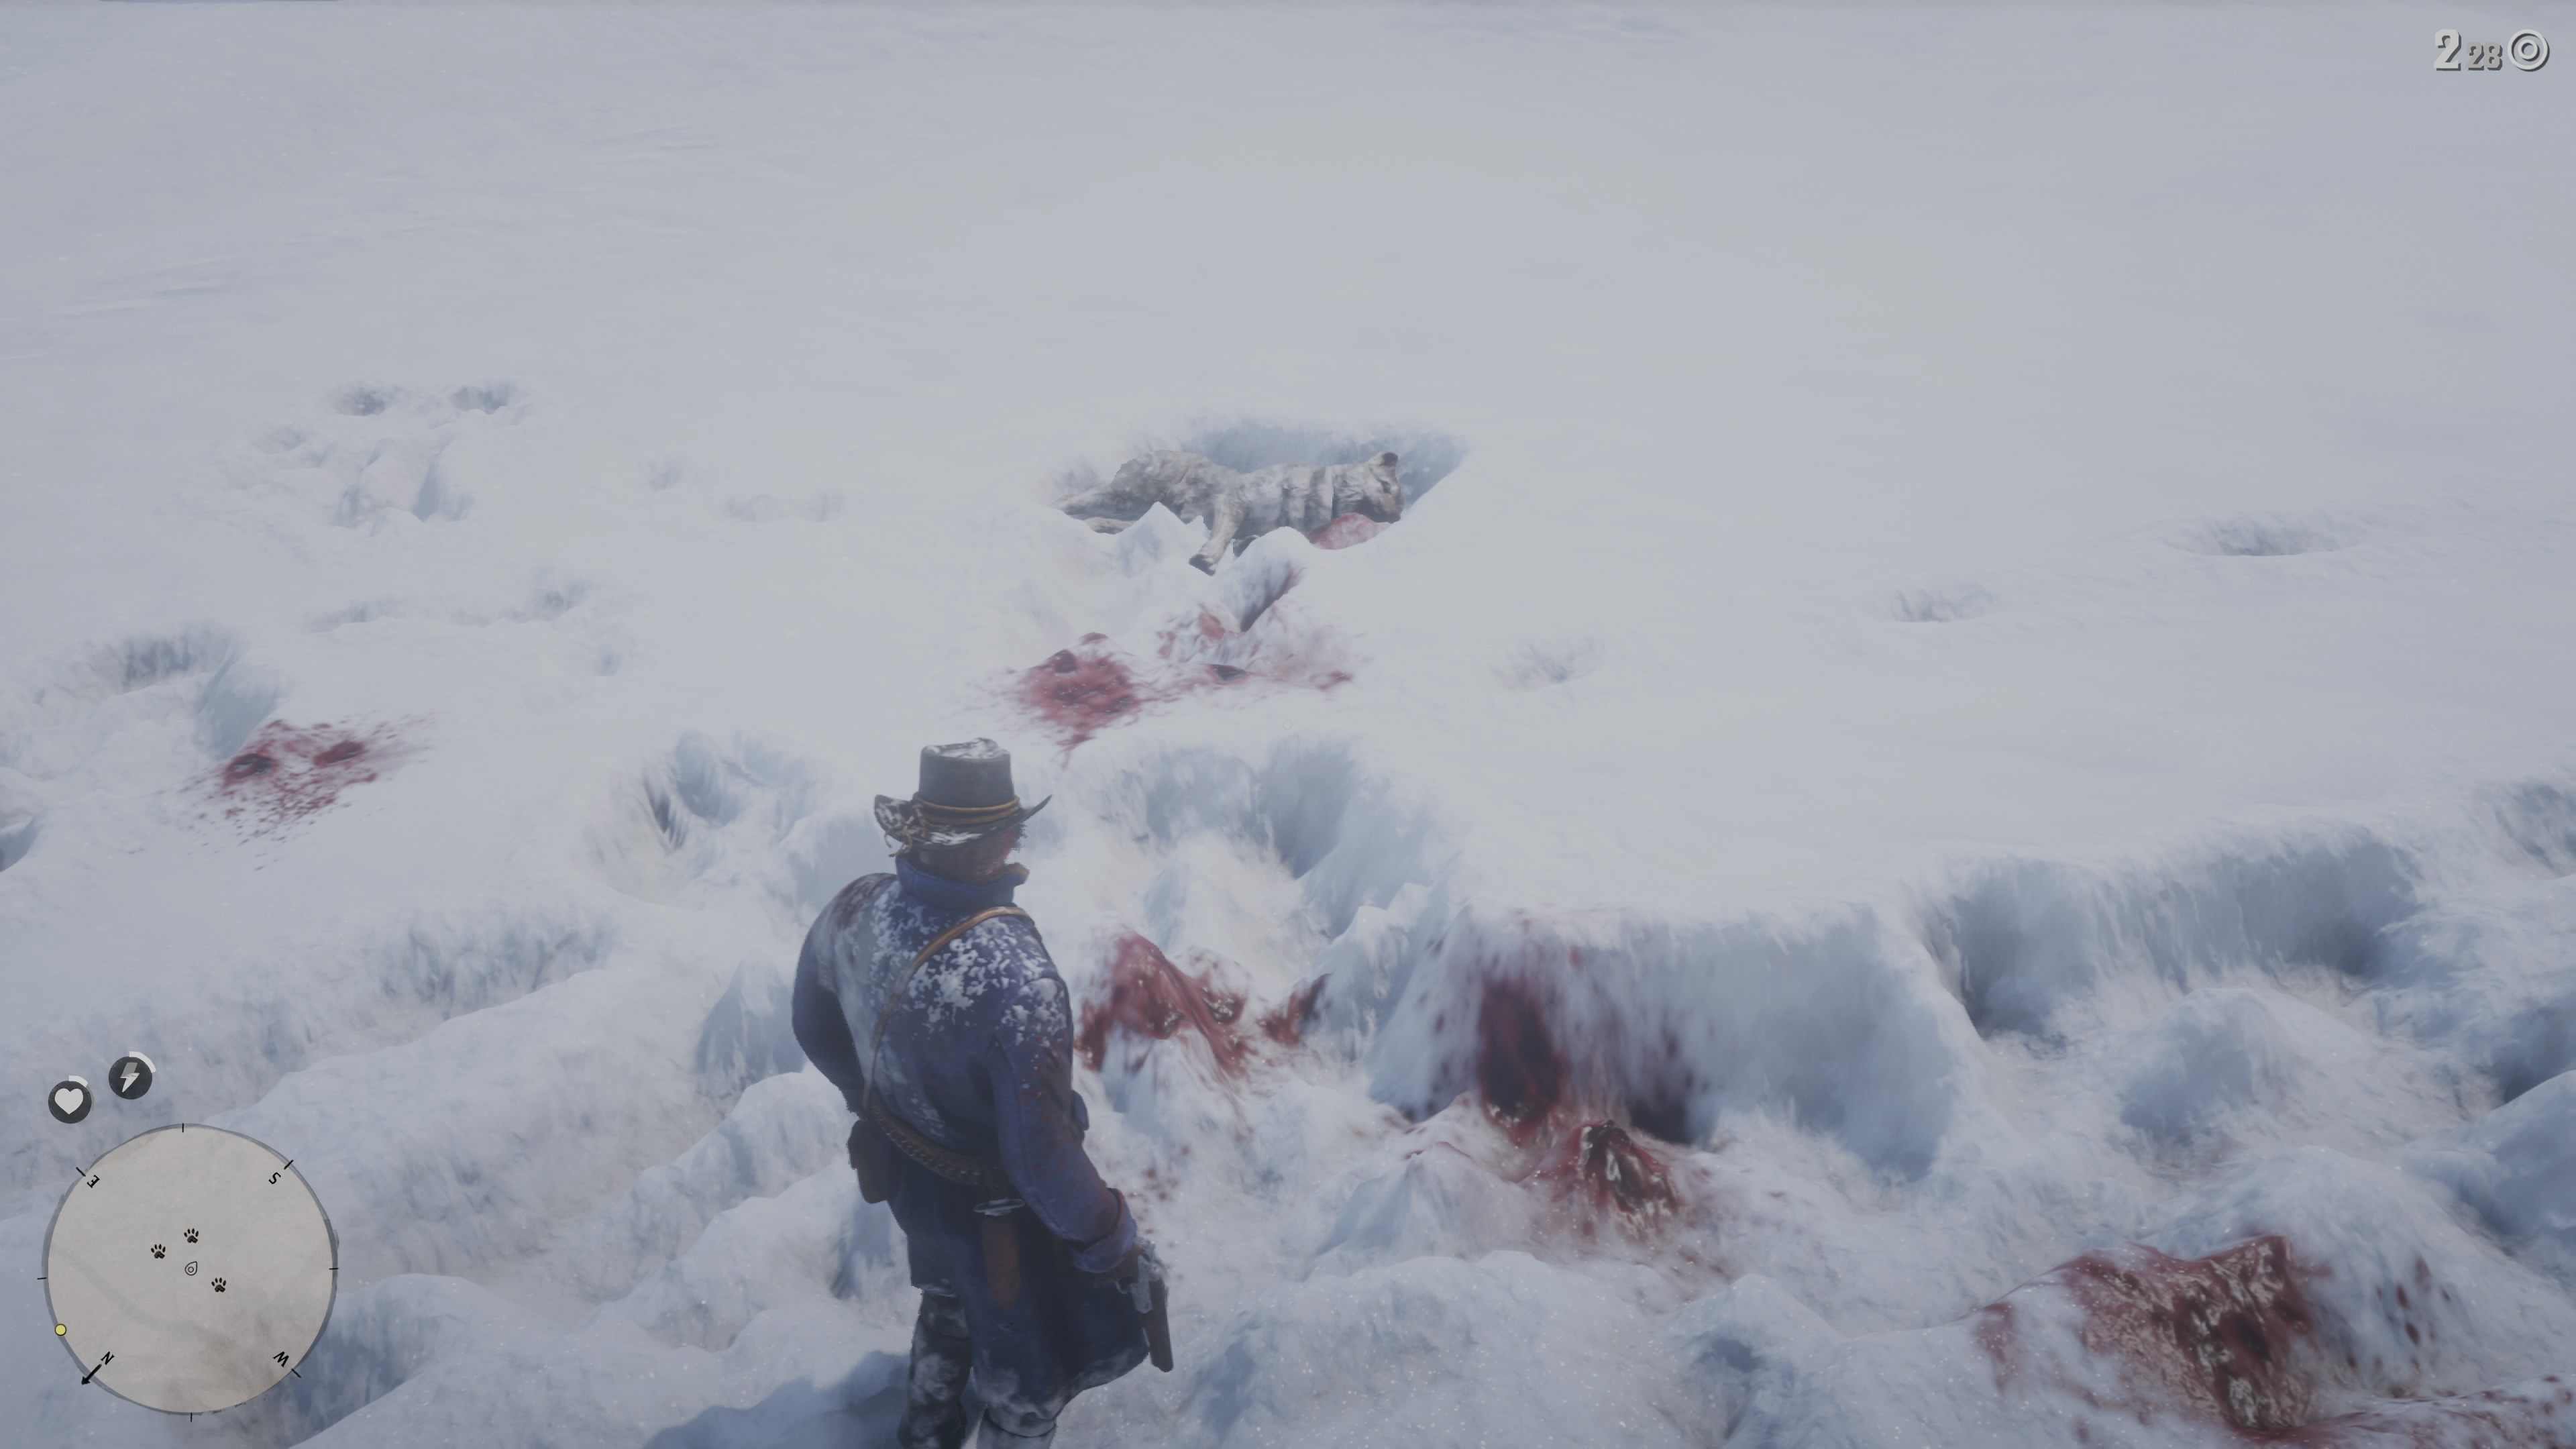 7075d7caef71716c5029aa71f6edfb5d.jpg - Red Dead Redemption 2